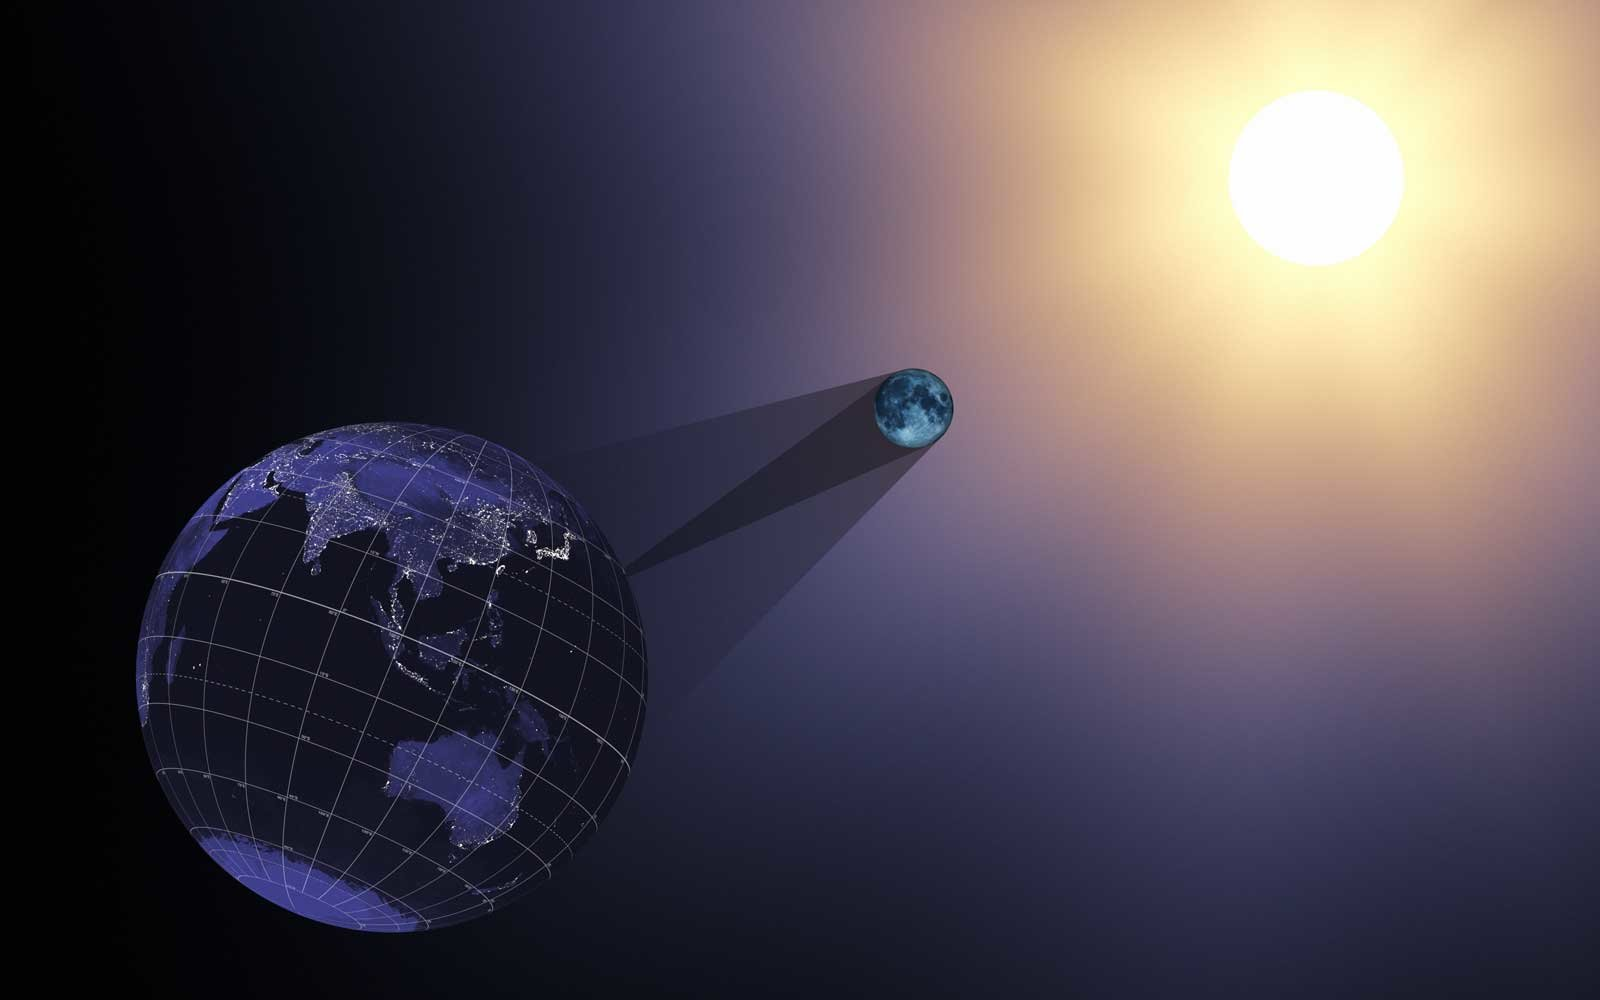 Representation of the Solar Eclipse from NASA